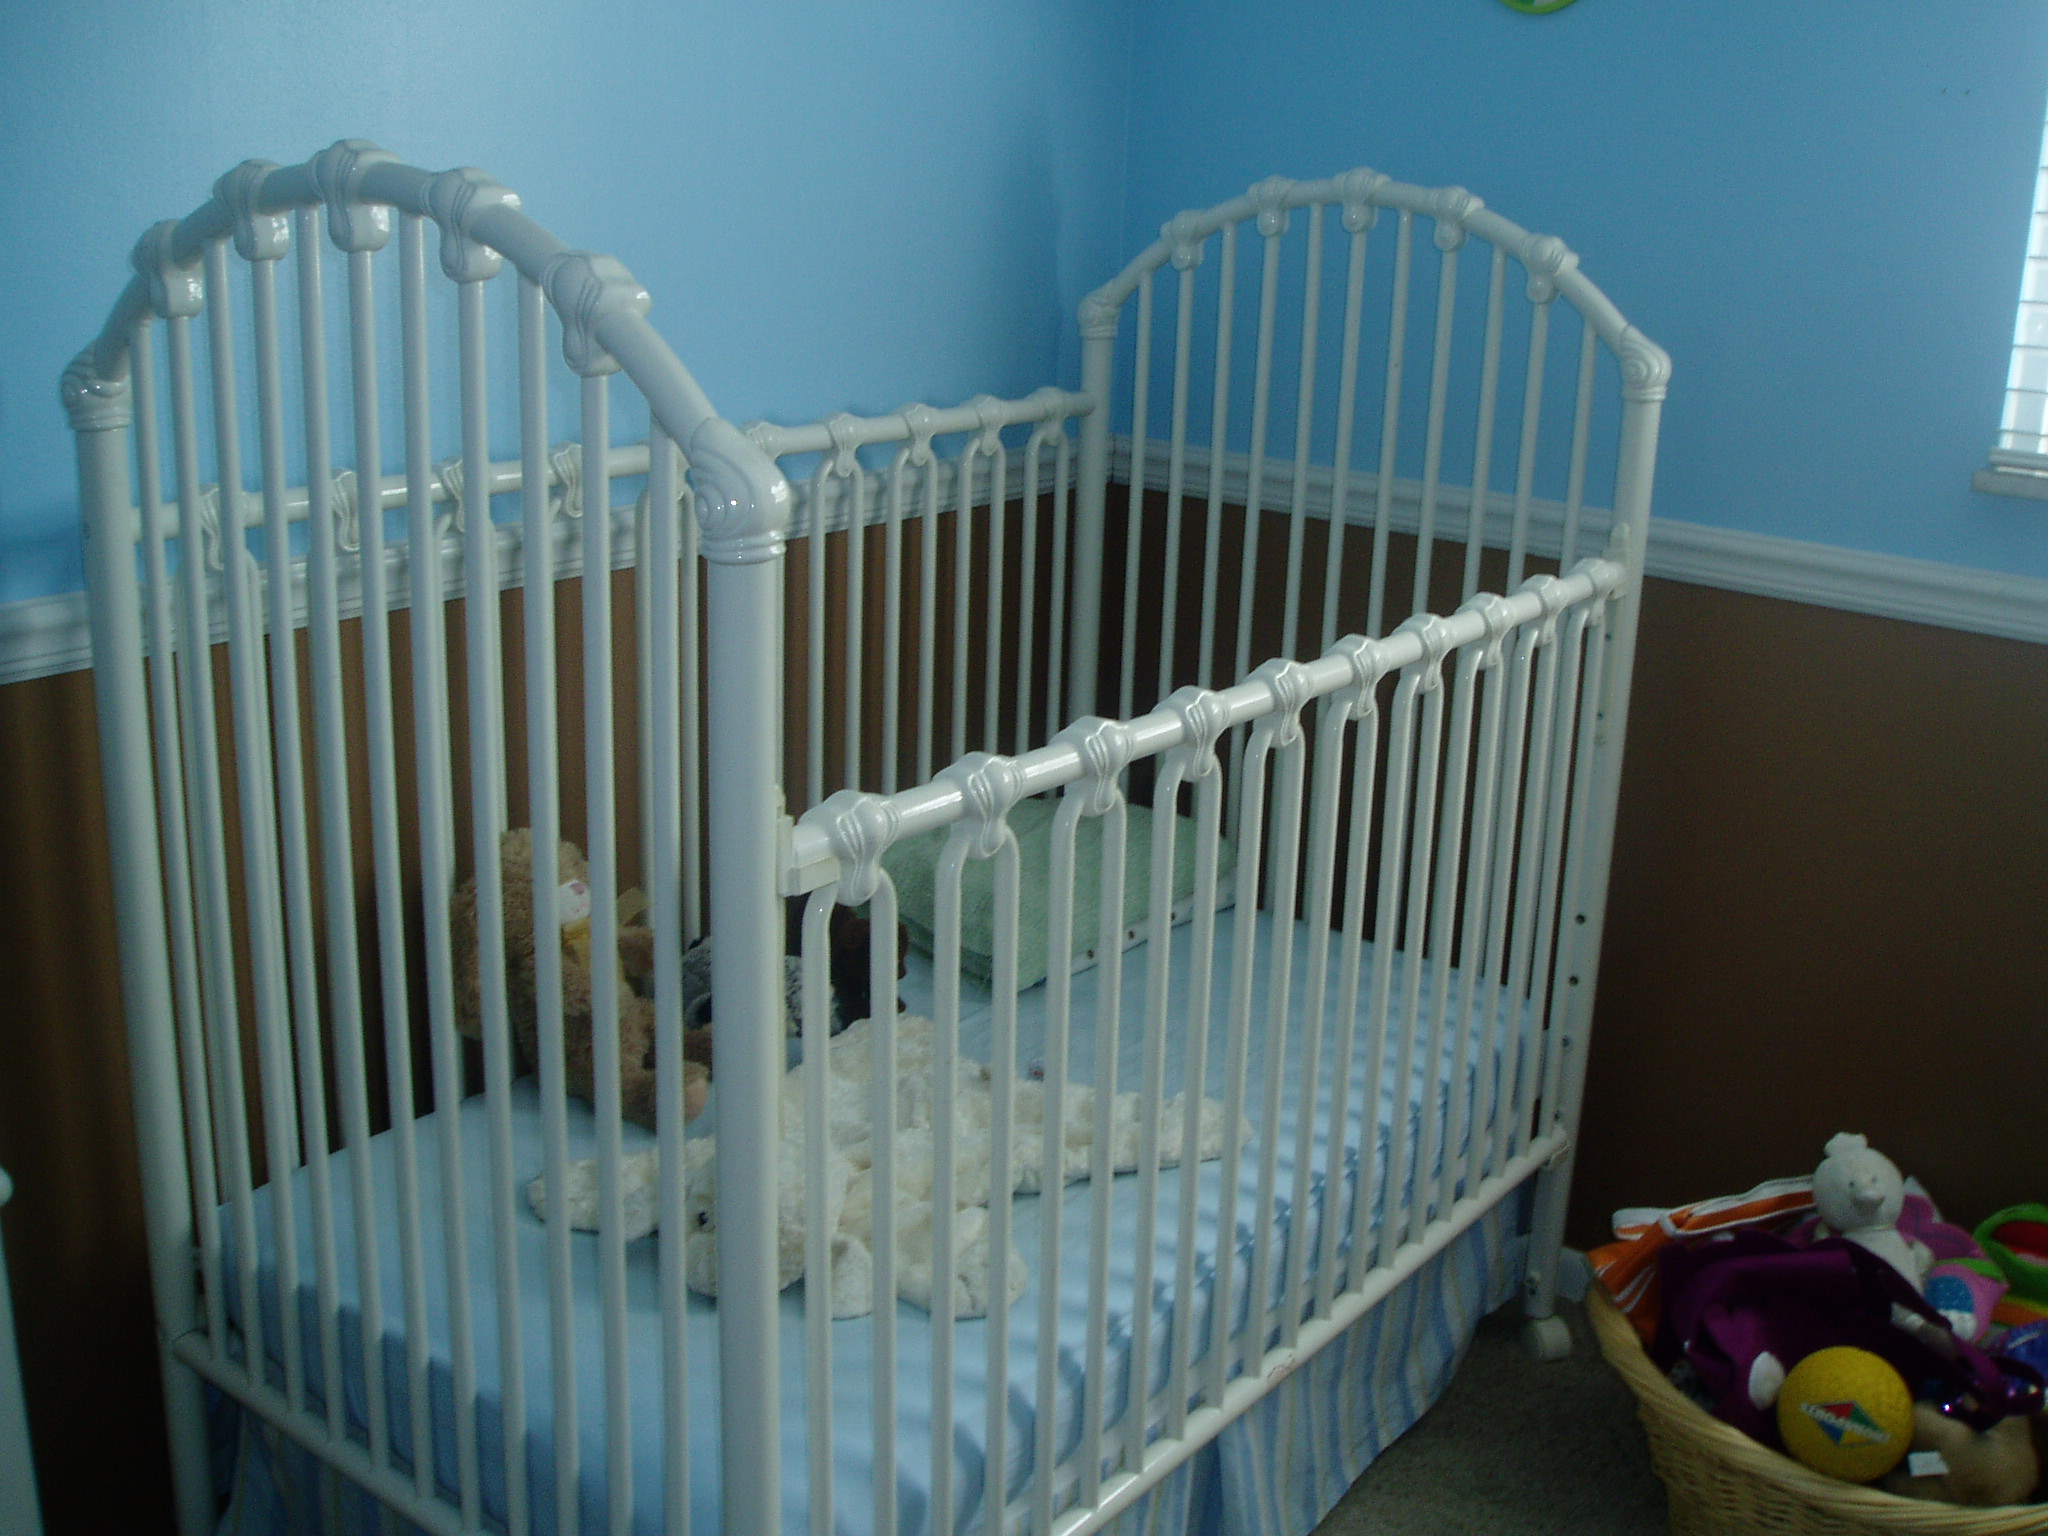 Iron crib for sale craigslist - Iron Crib